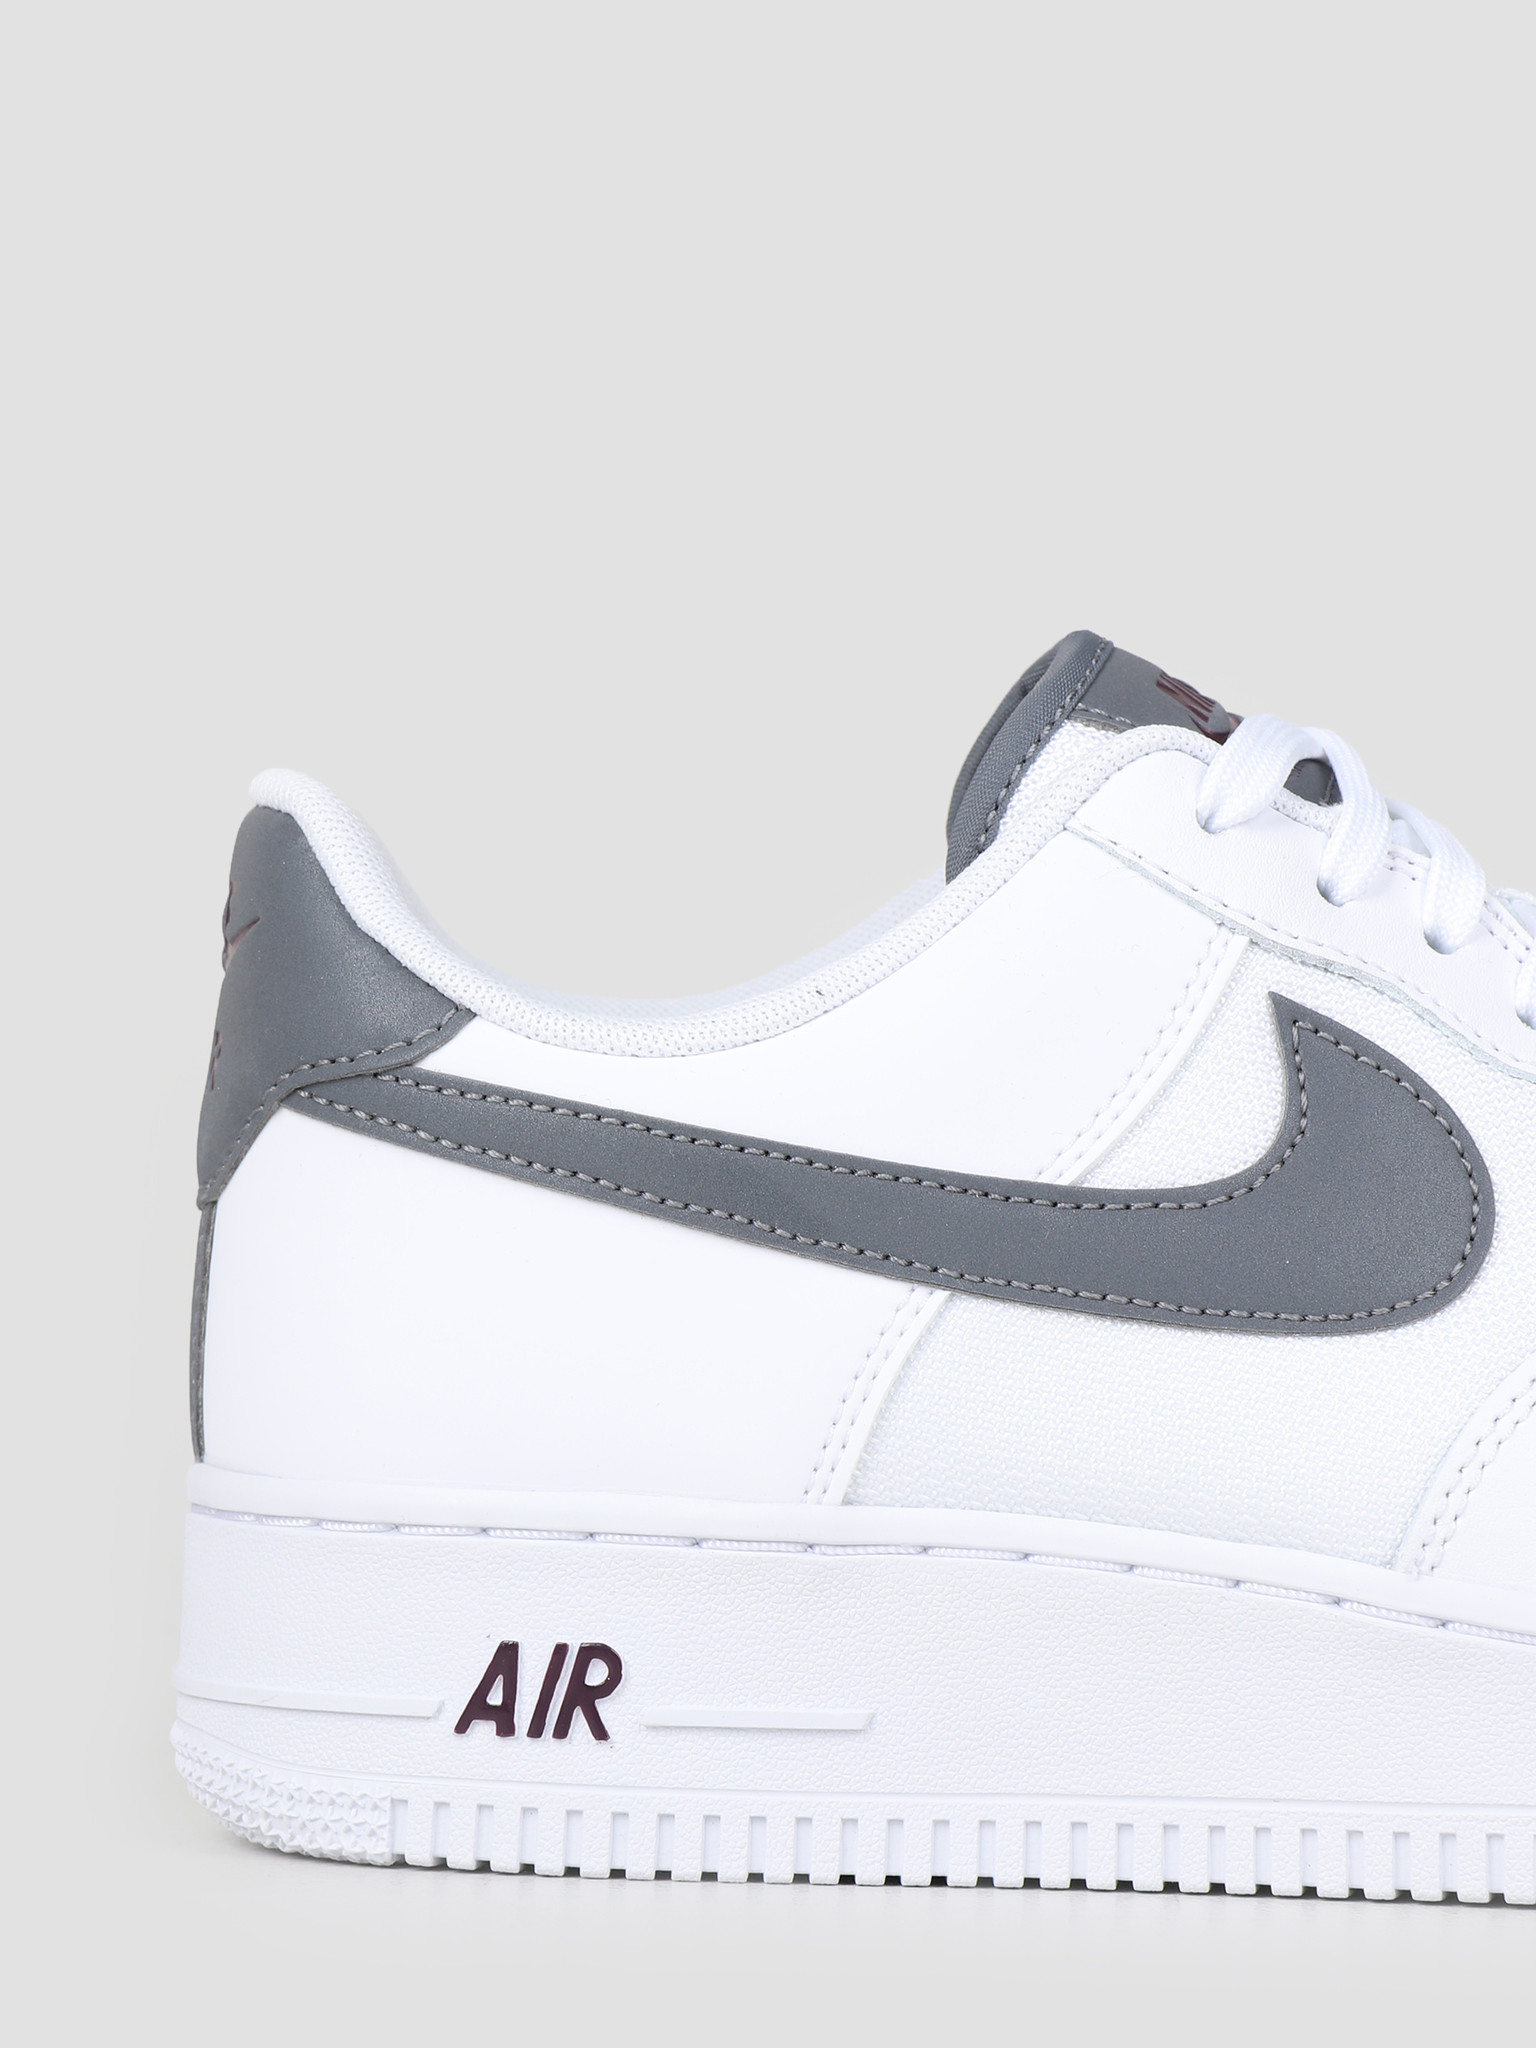 Nike Nike Air Force 1 '07 Lv8 White Cool Grey-Night Maroon Bv1278-100